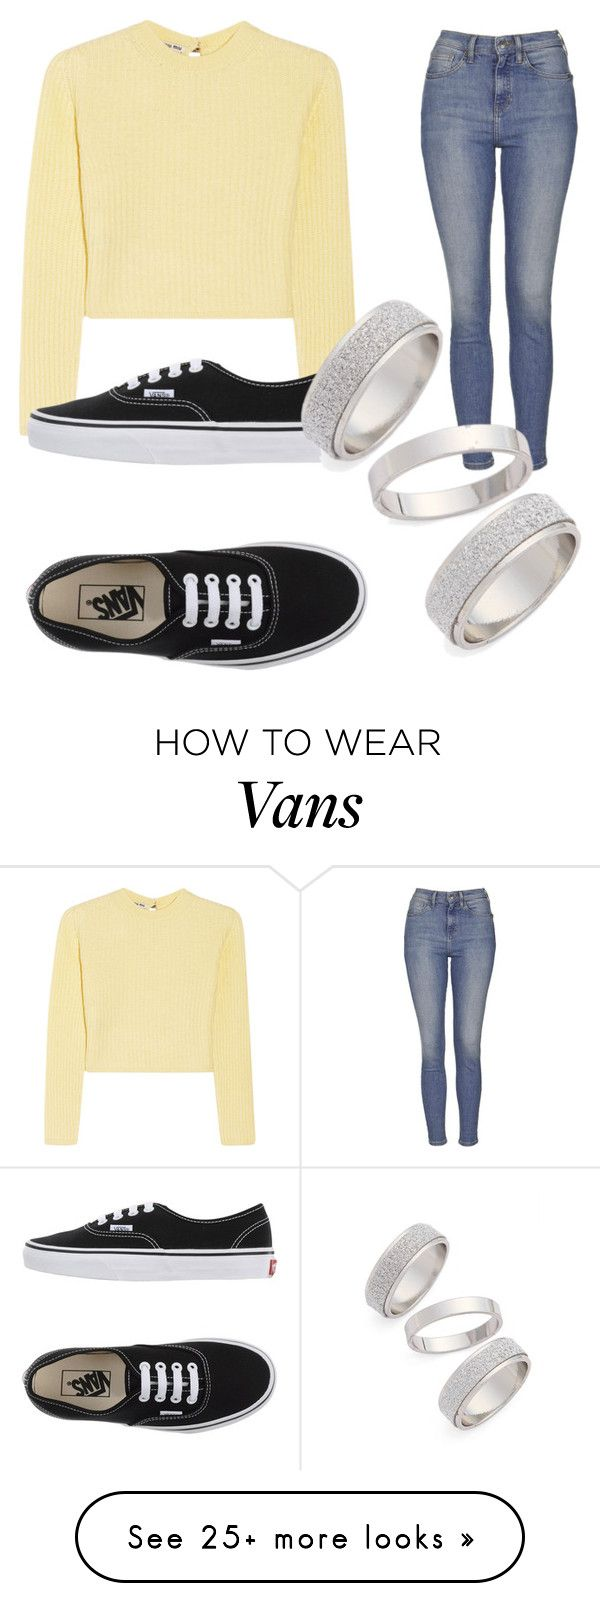 """""""Untitled #434"""" by jaimie-lynn-1 on Polyvore featuring Miu Miu, Topshop, Vans, women's clothing, women's fashion, women, female, woman, misses and juniors"""